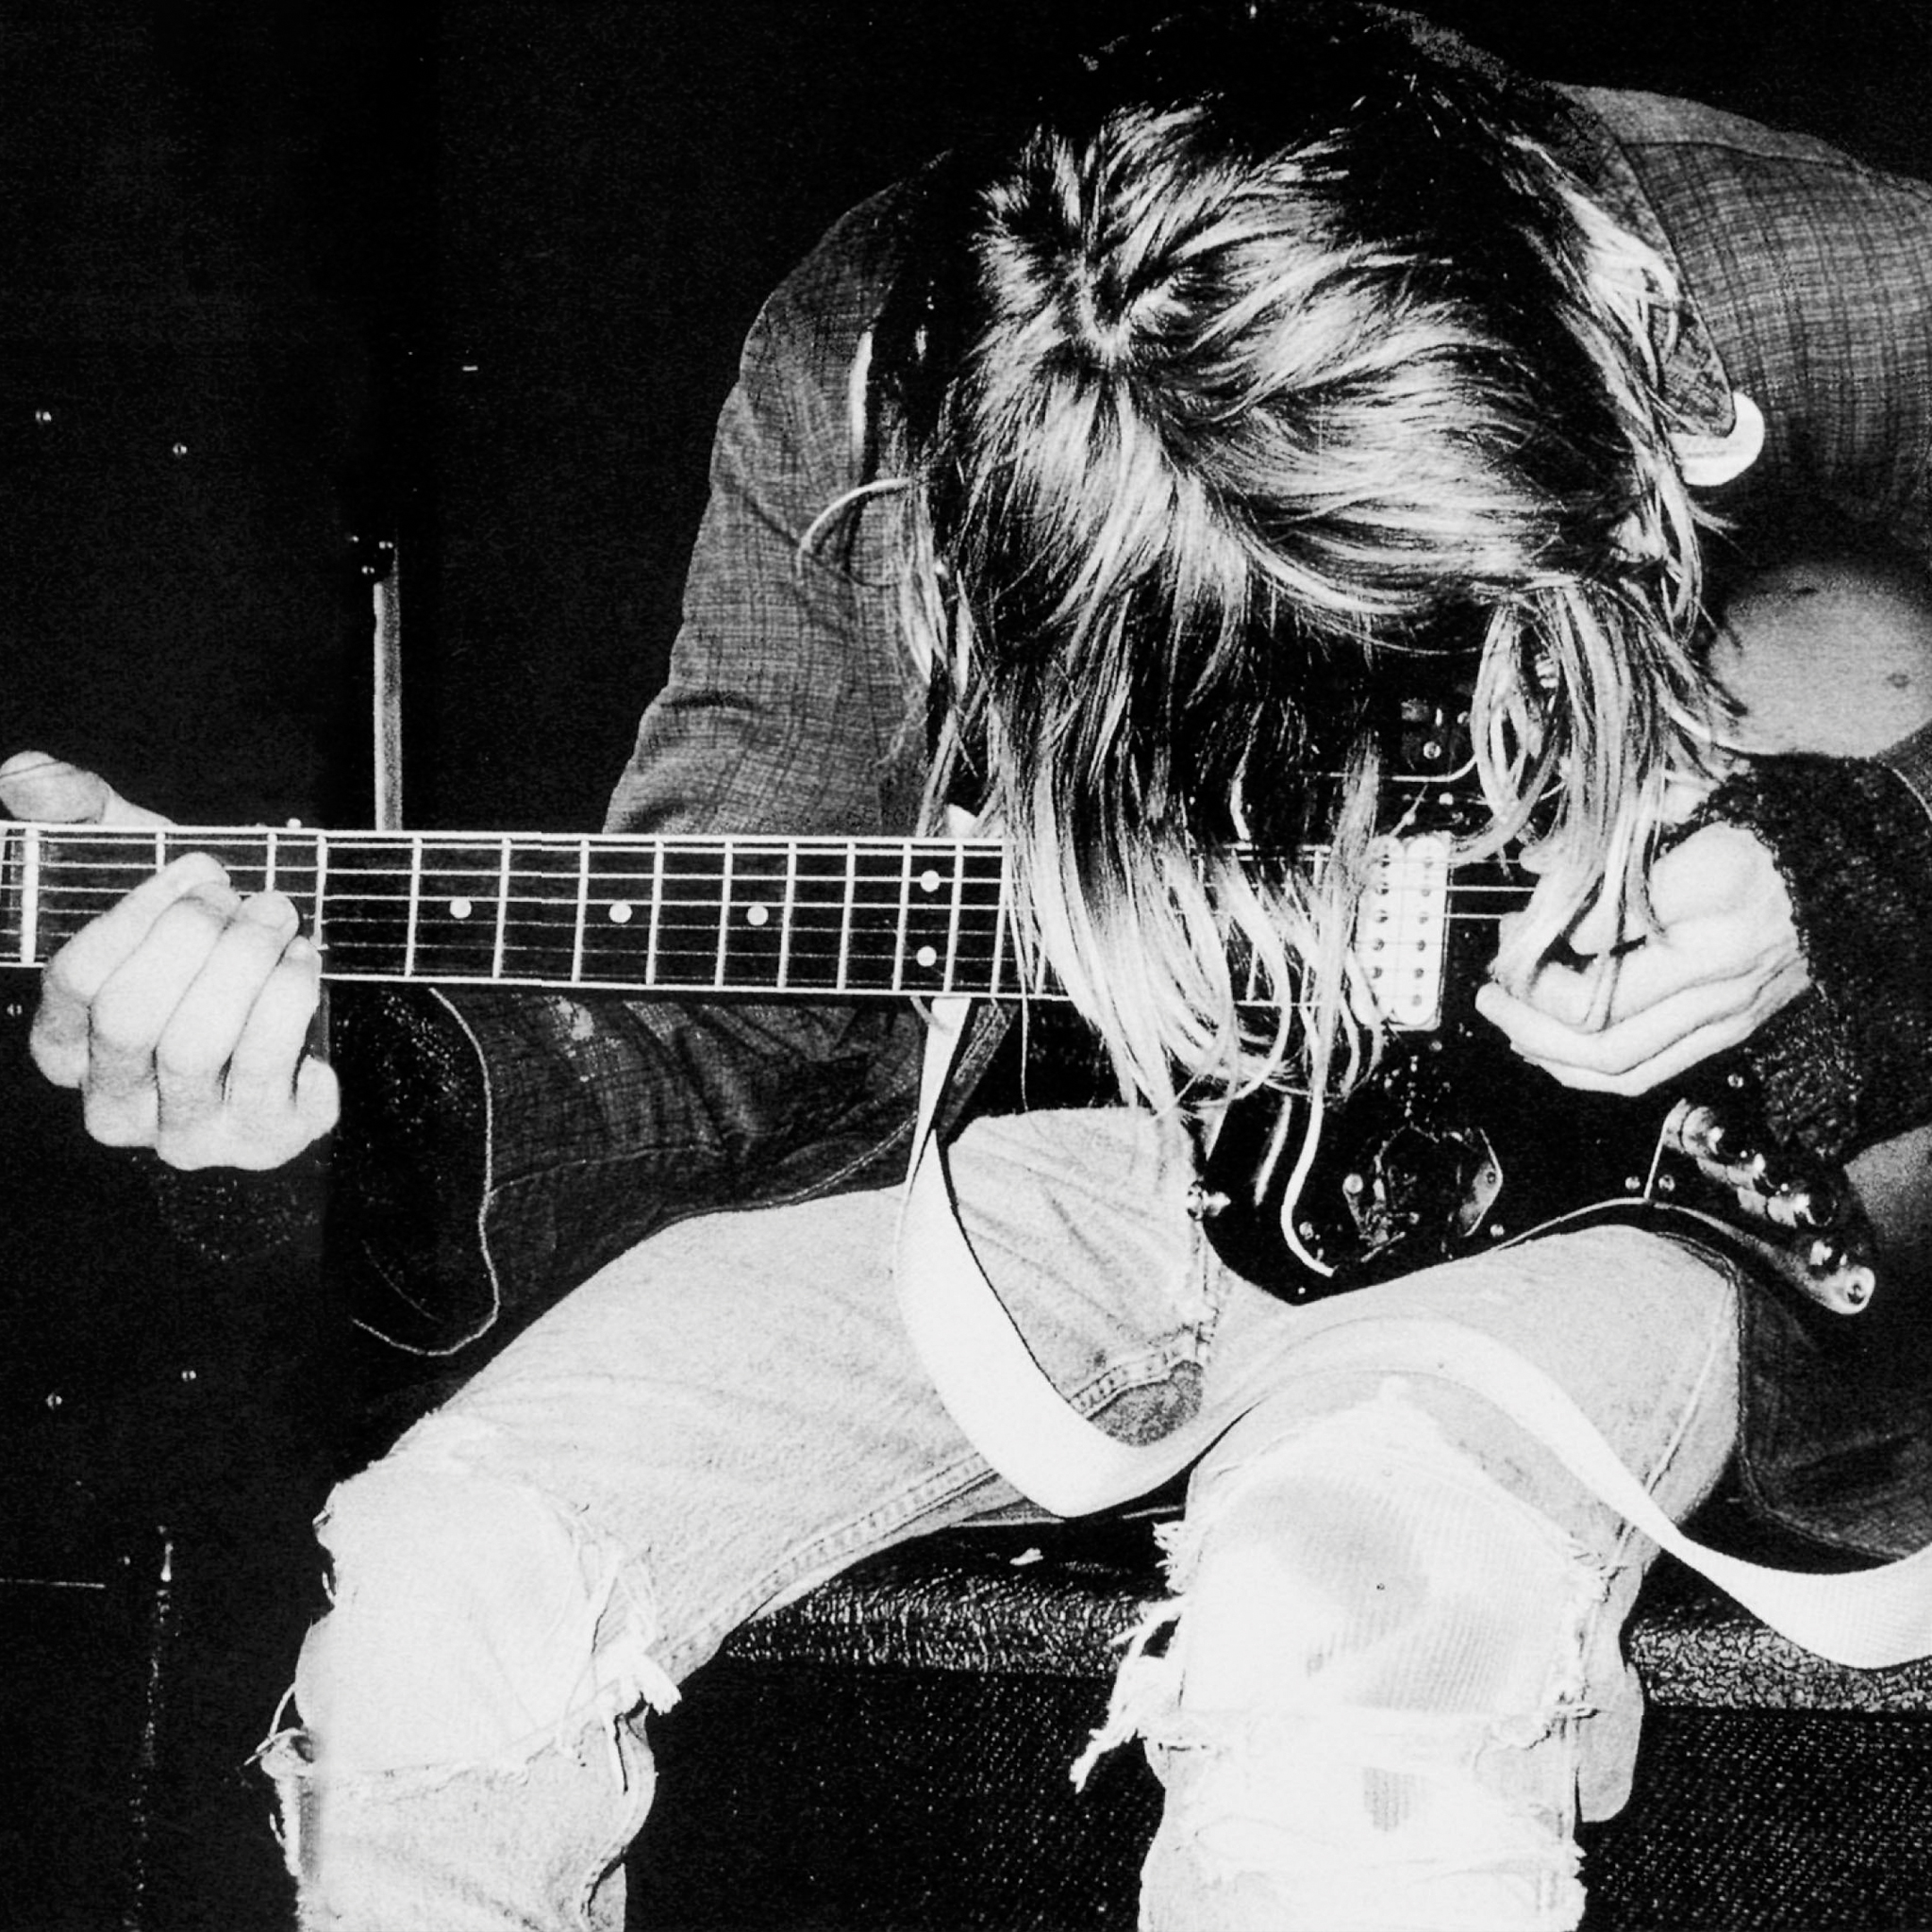 Kurt-Cobain-Nirvanan-3Wallpapers-iPad-Retina